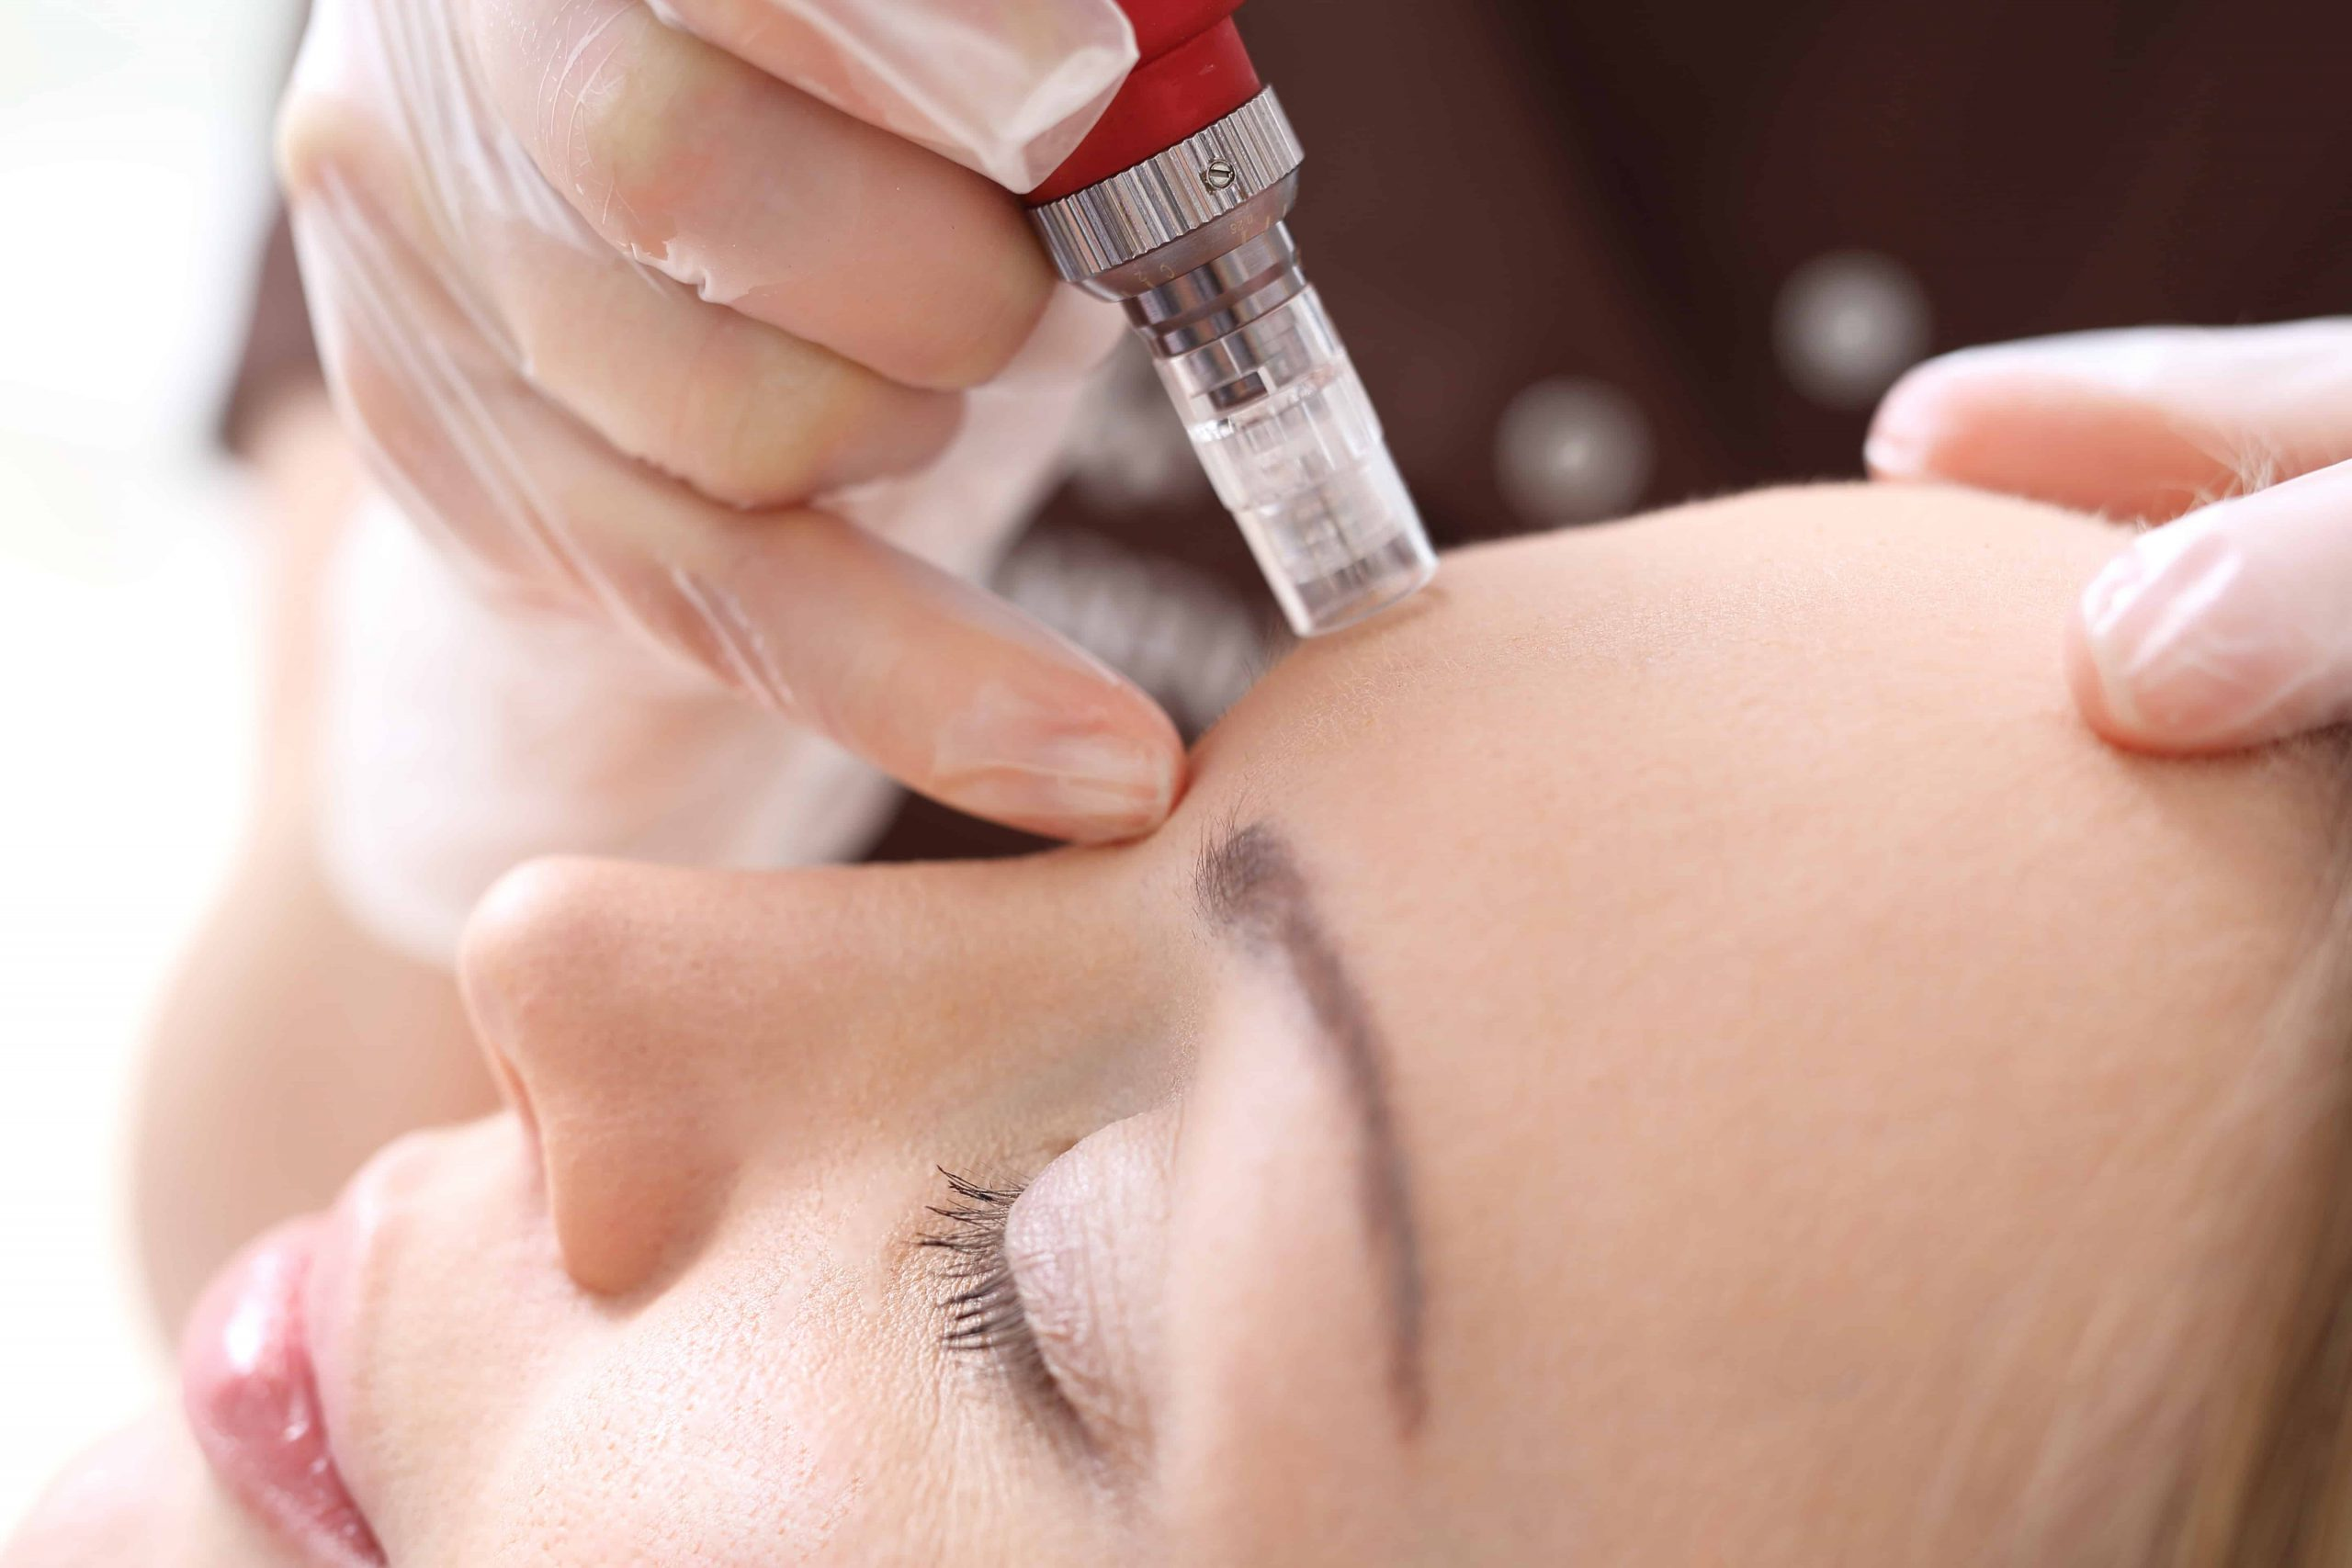 Traditional Micro-Needling vs RF Micro-Needling vs At-Home Micro-Needling